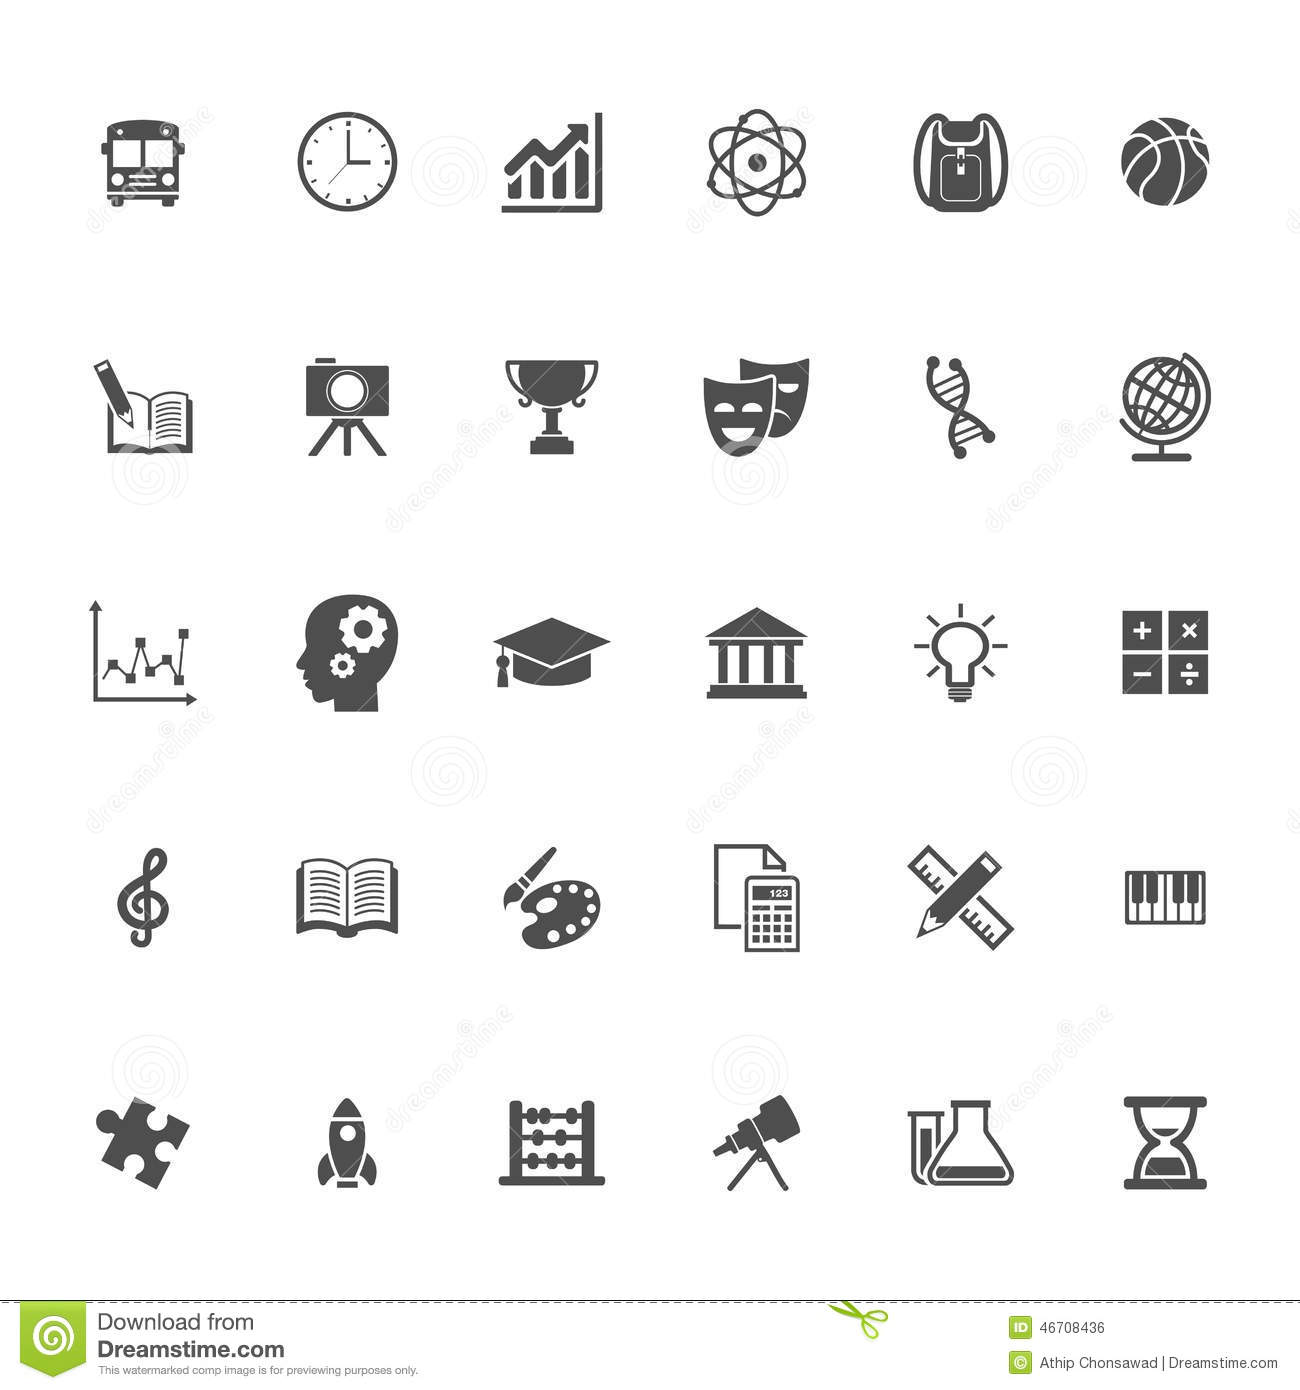 Collection Of Monochrome Flat Design Book Logo: Education Flat Icon Stock Vector